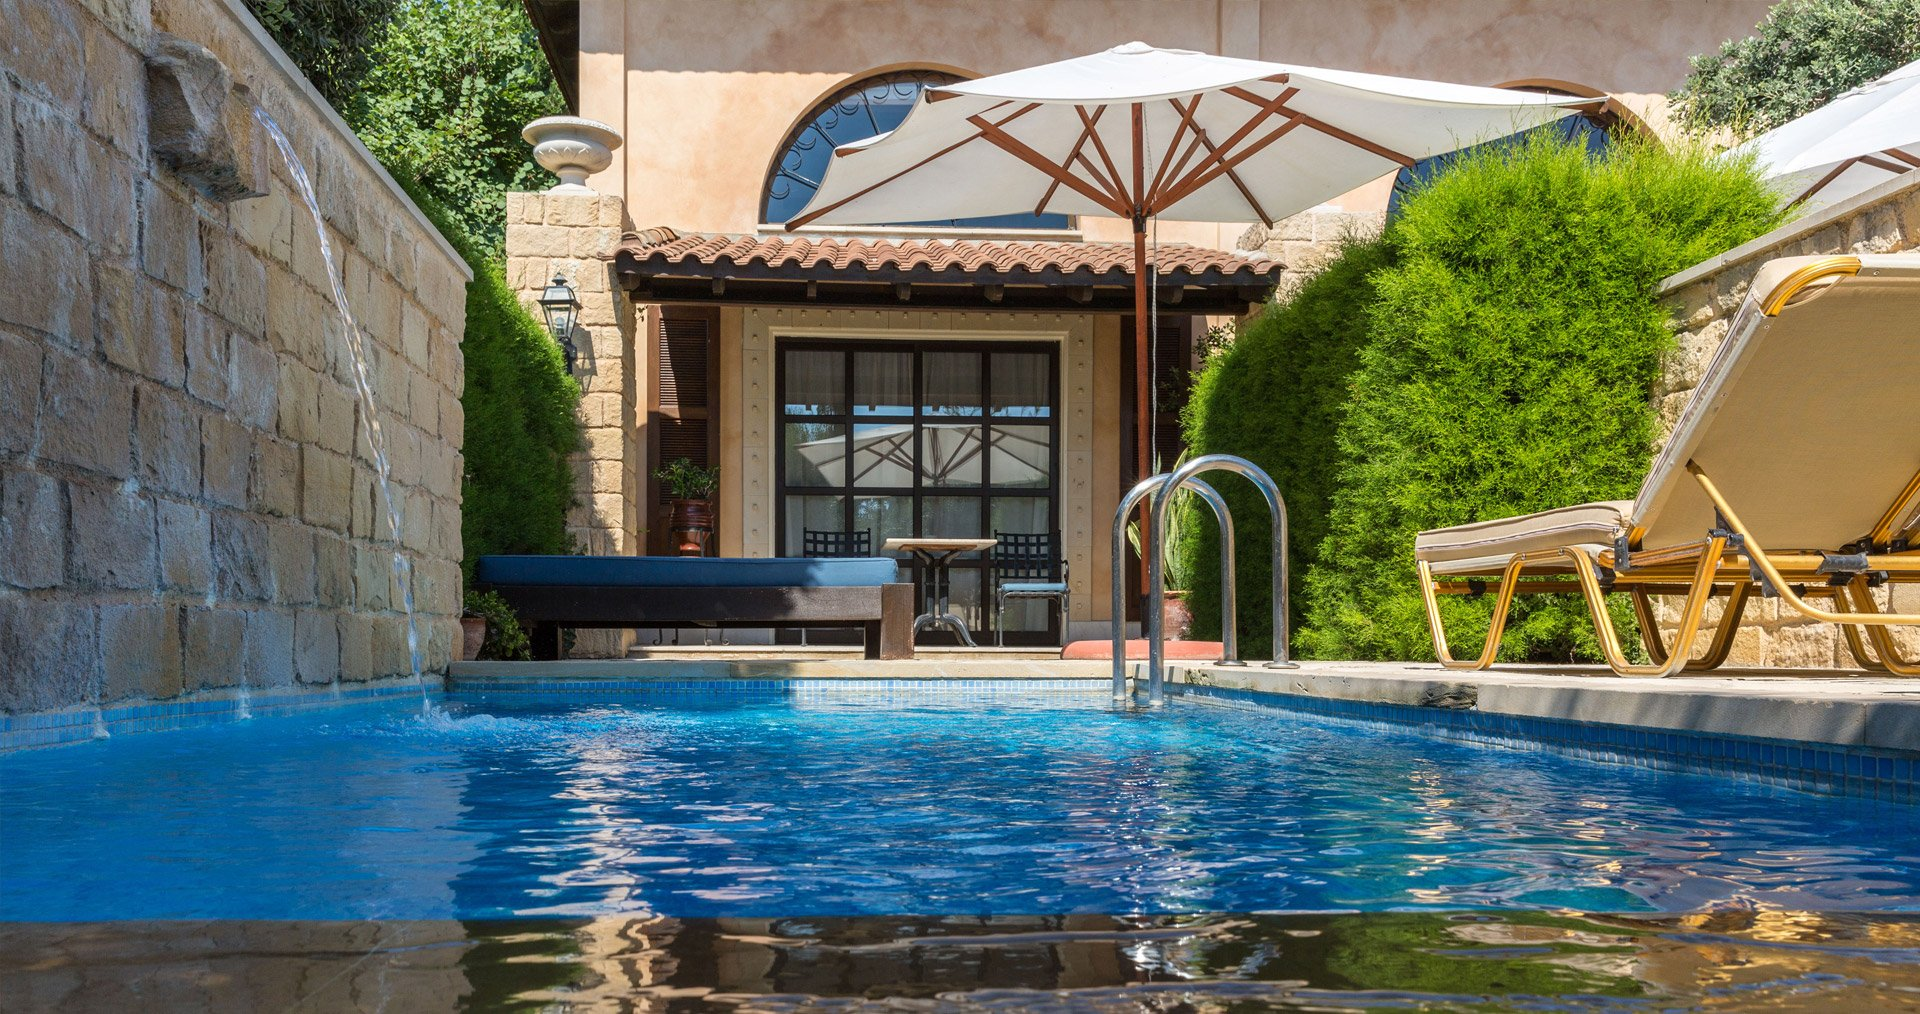 Arizona pond co pool service and products tucson az for Az pond and pool